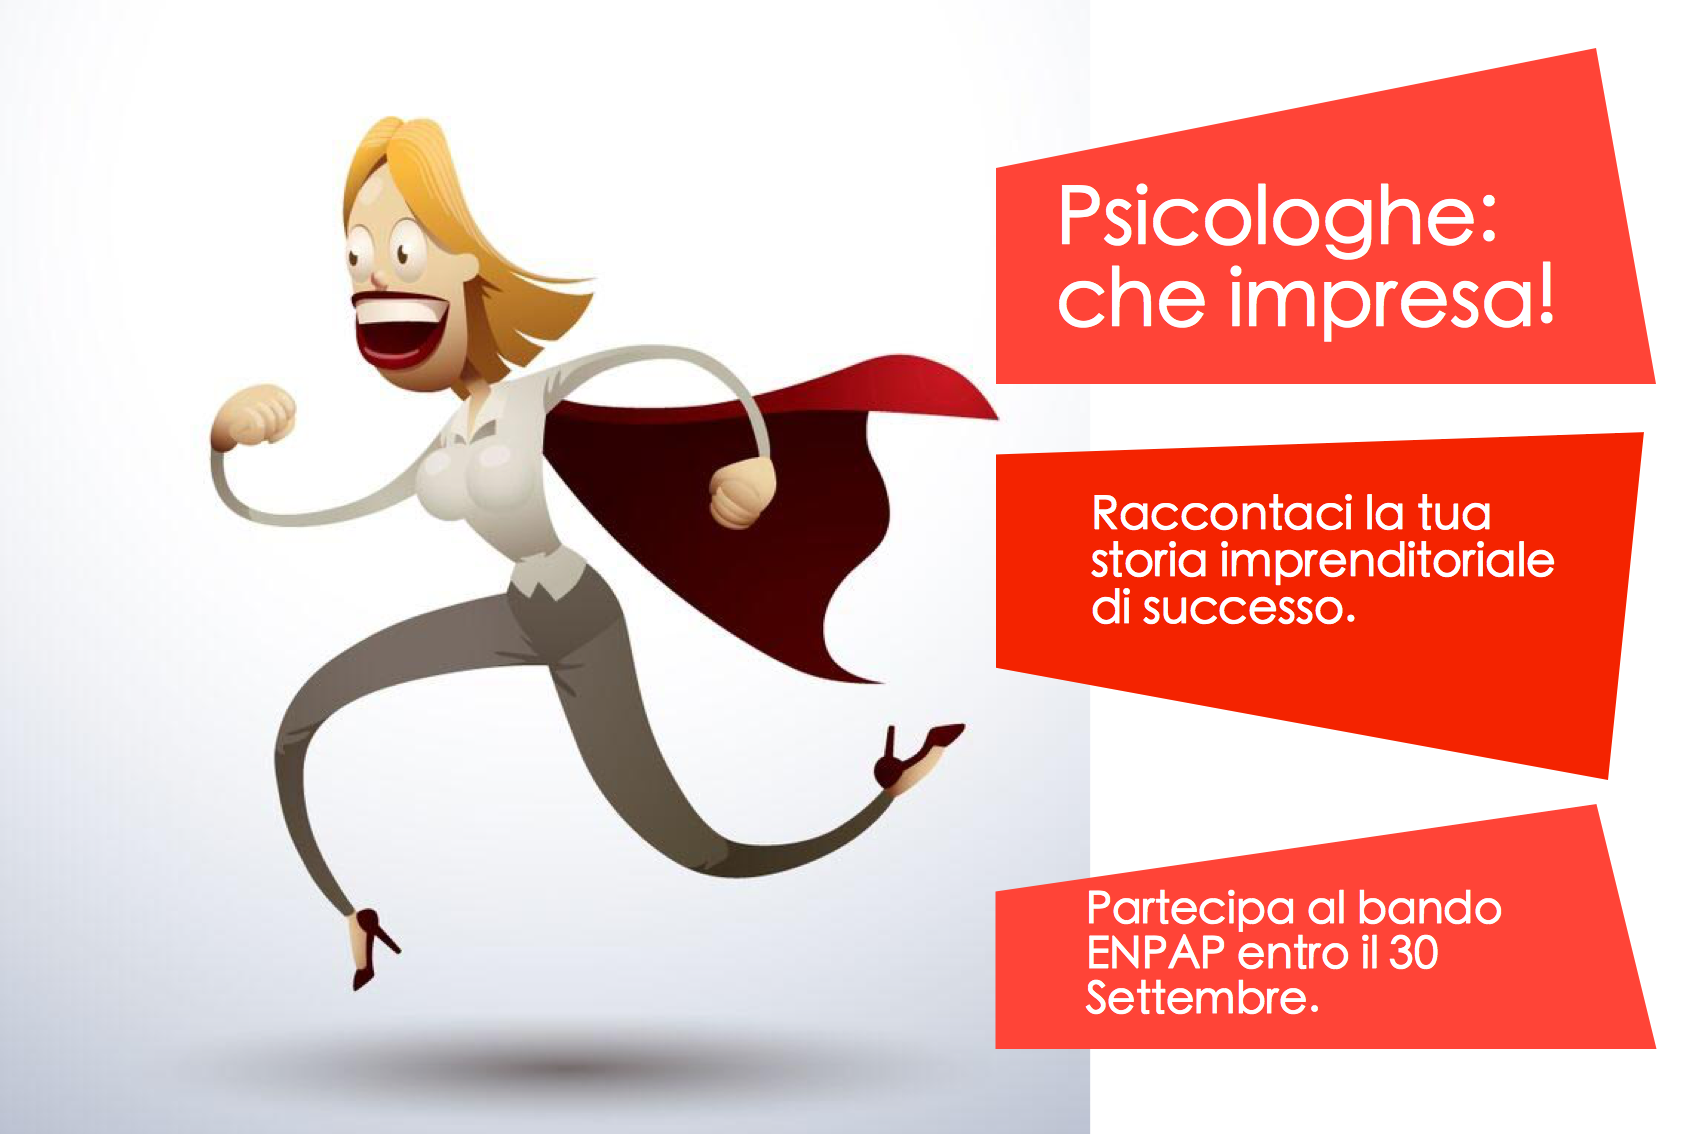 Psicologhe di successo? Yes, we can!